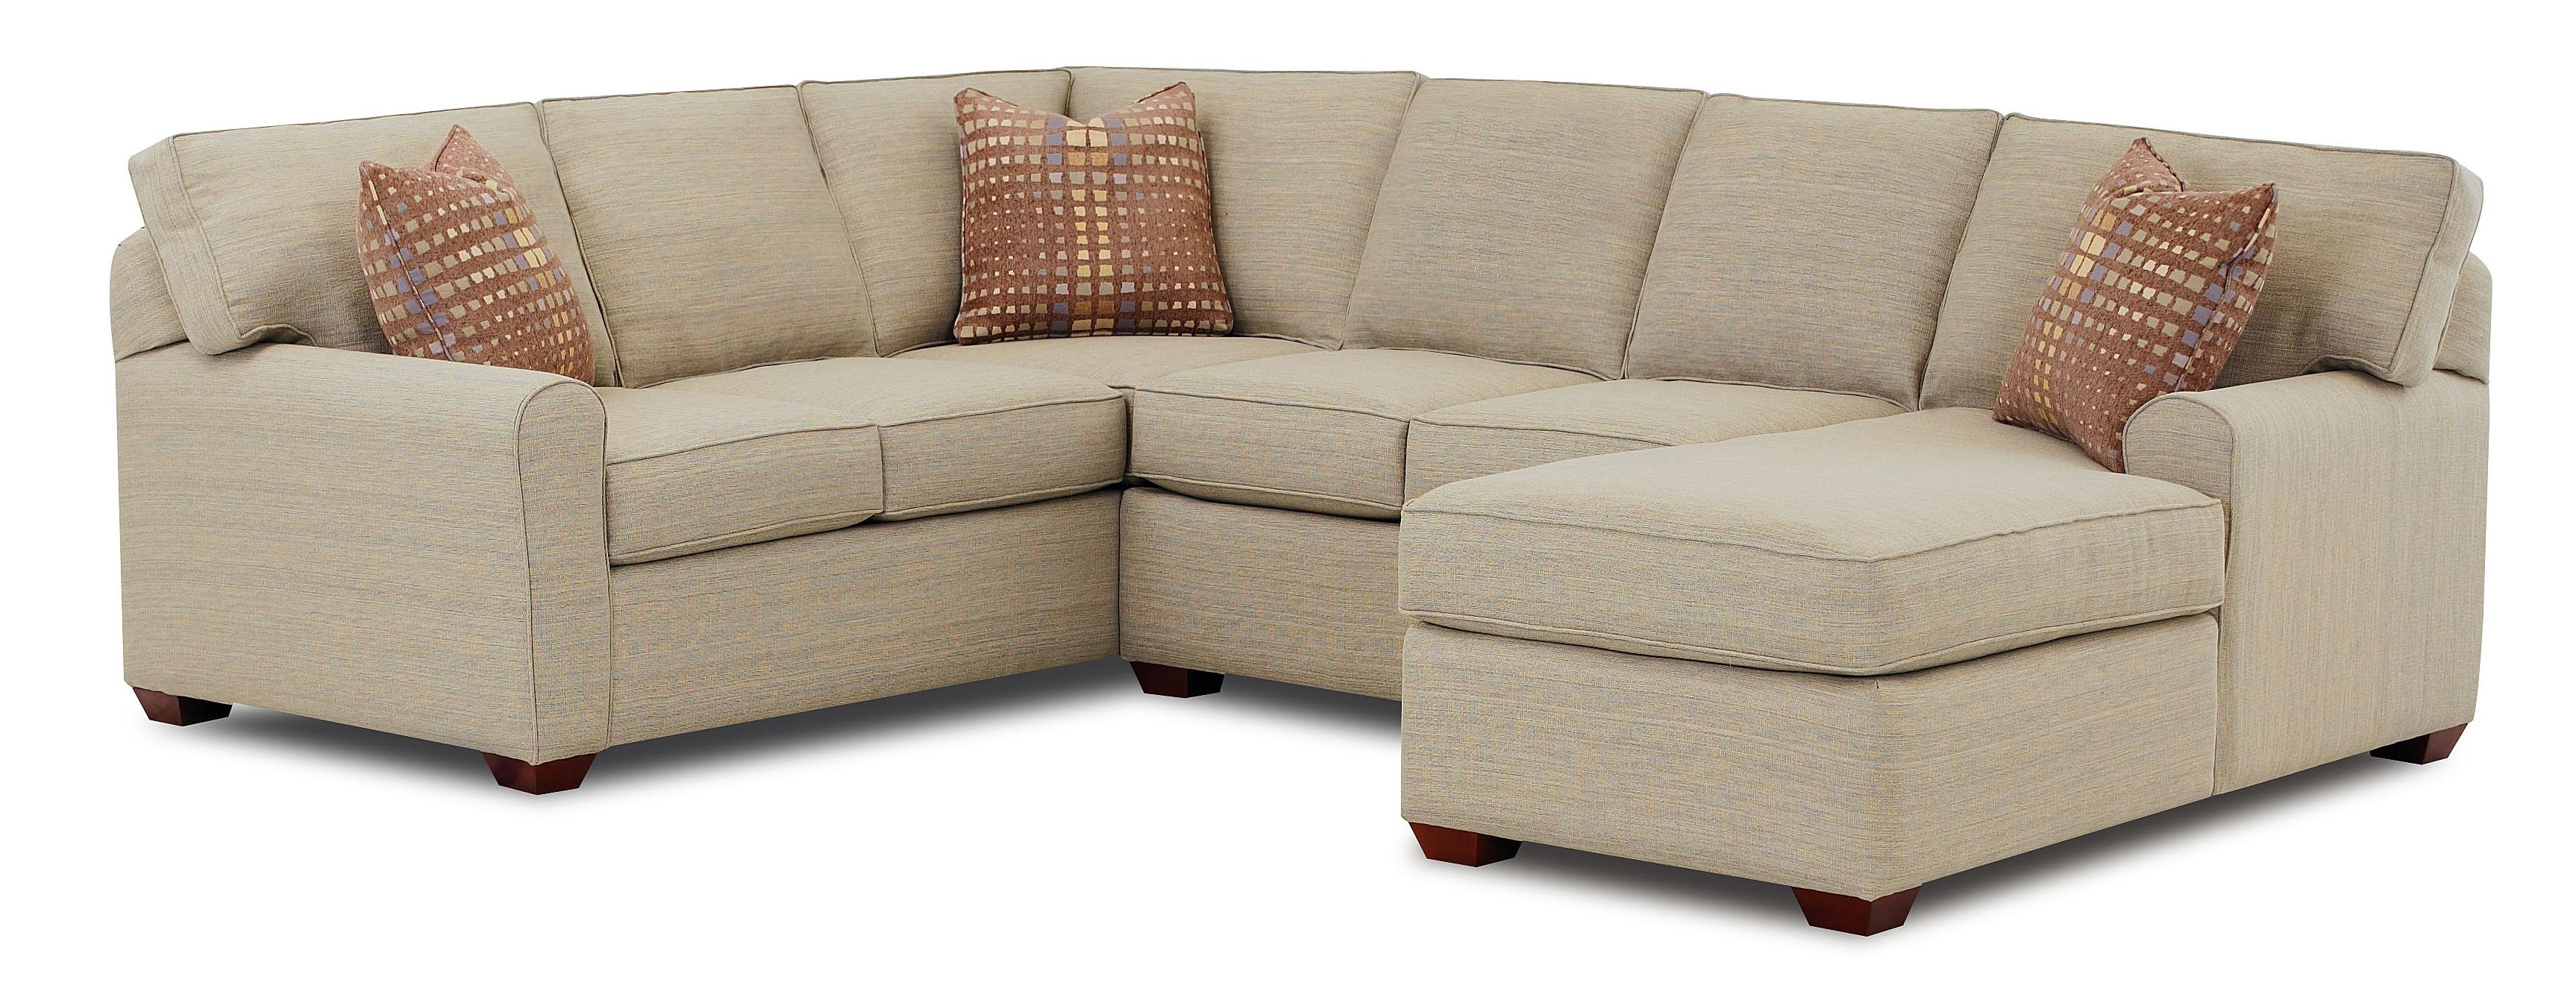 Well Known Sectional Sofas With Chaise Lounge And Ottoman For Sectional Sofa With Left Facing Chaise Loungeklaussner (View 19 of 20)